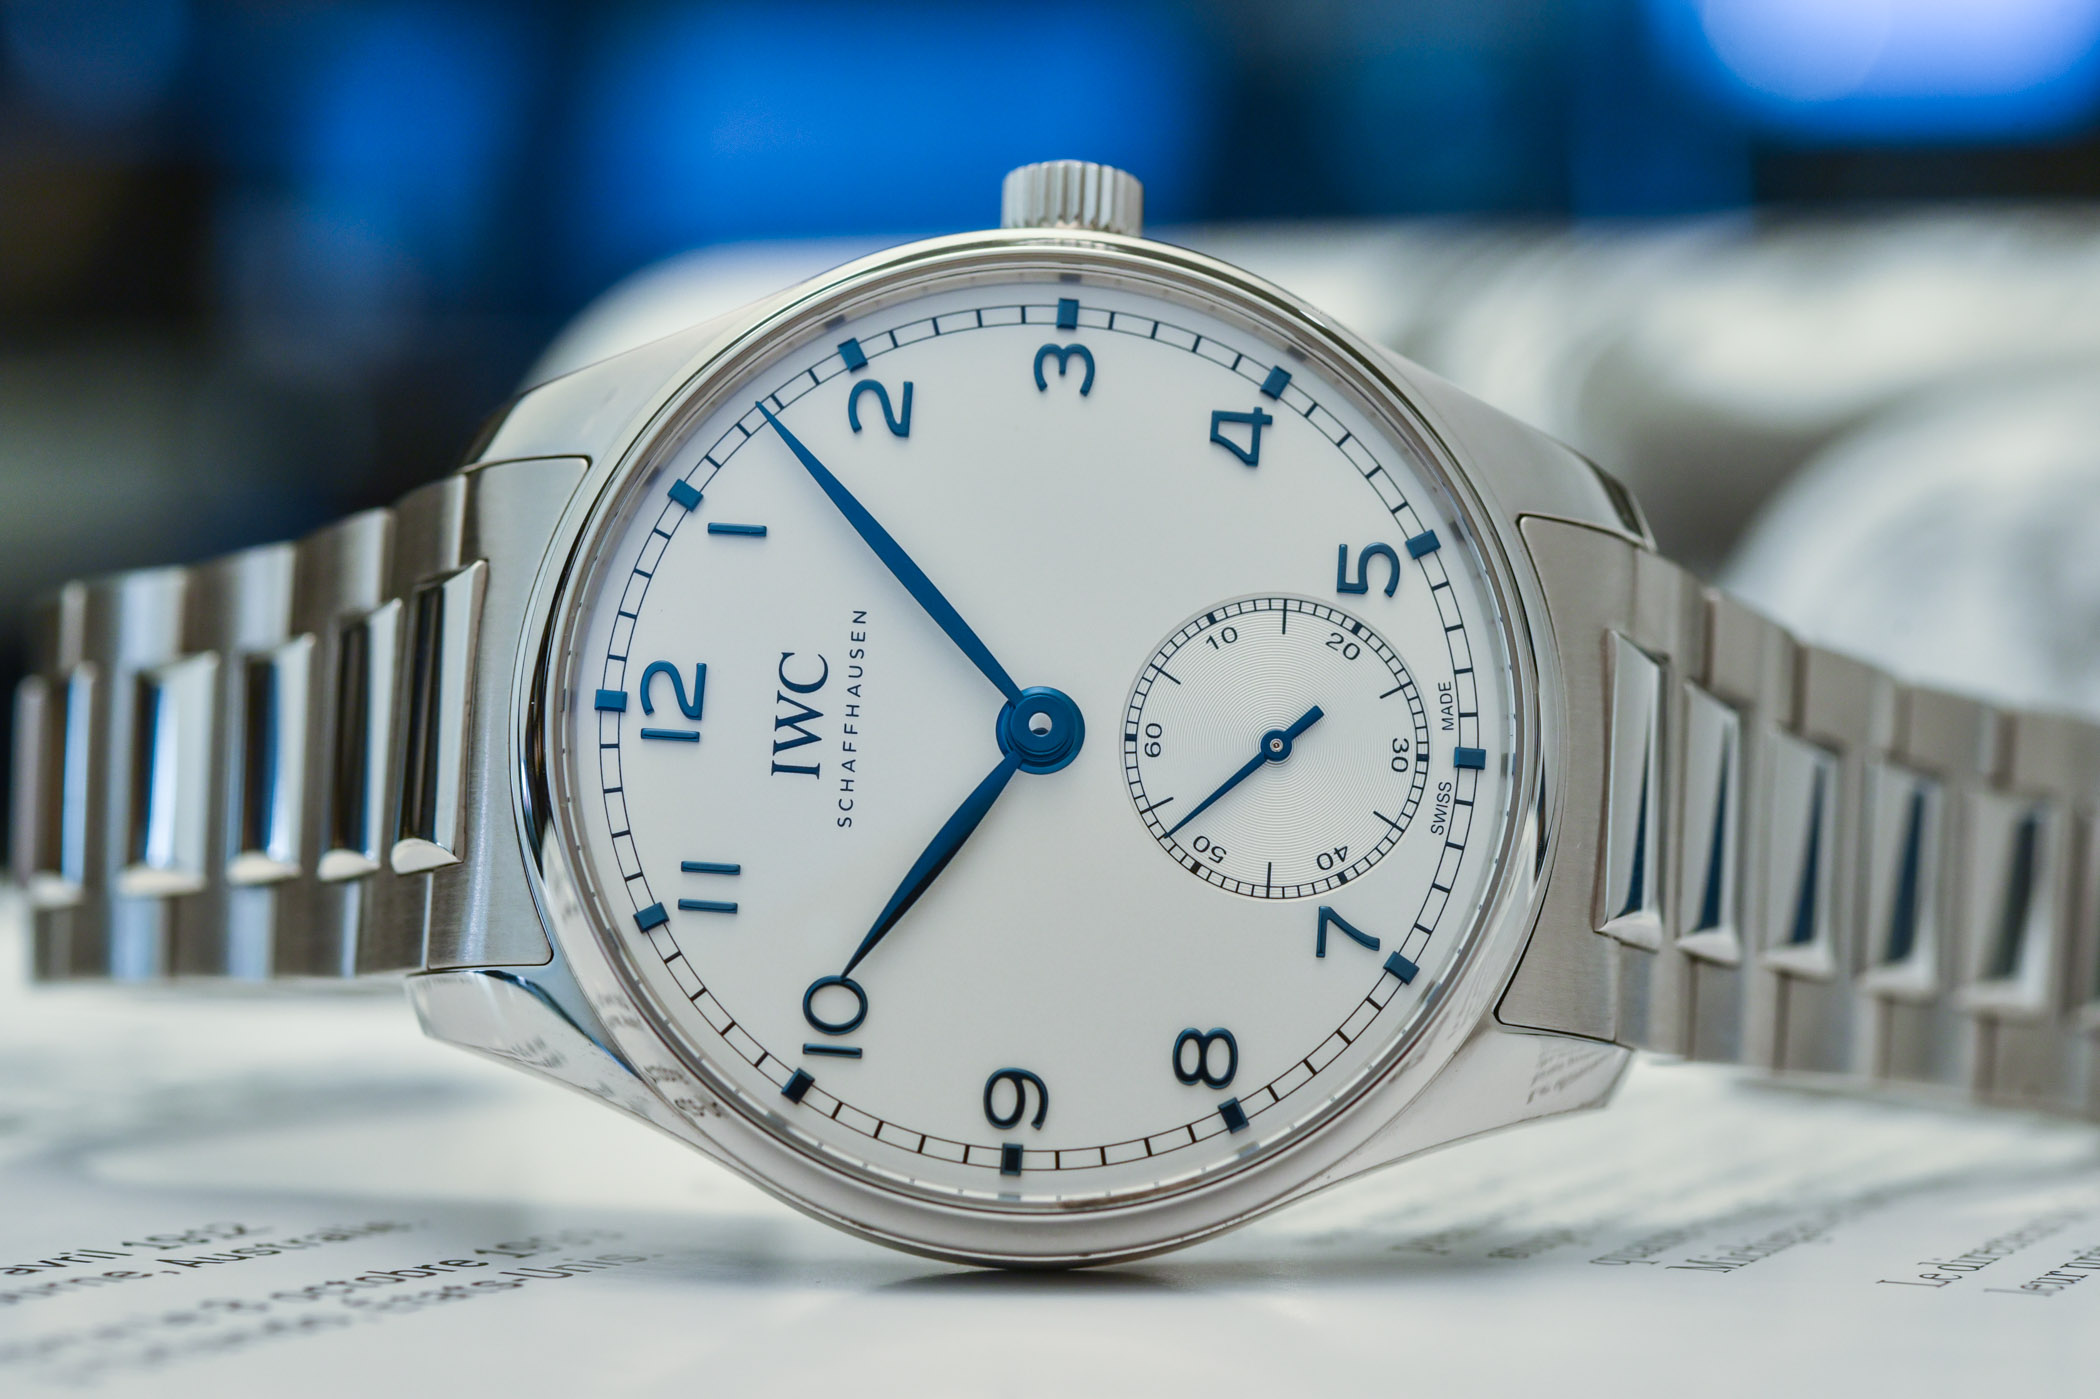 IWC Portugieser Automatic 40 now on Stainless Steel bracelet IW358312 hands on 9